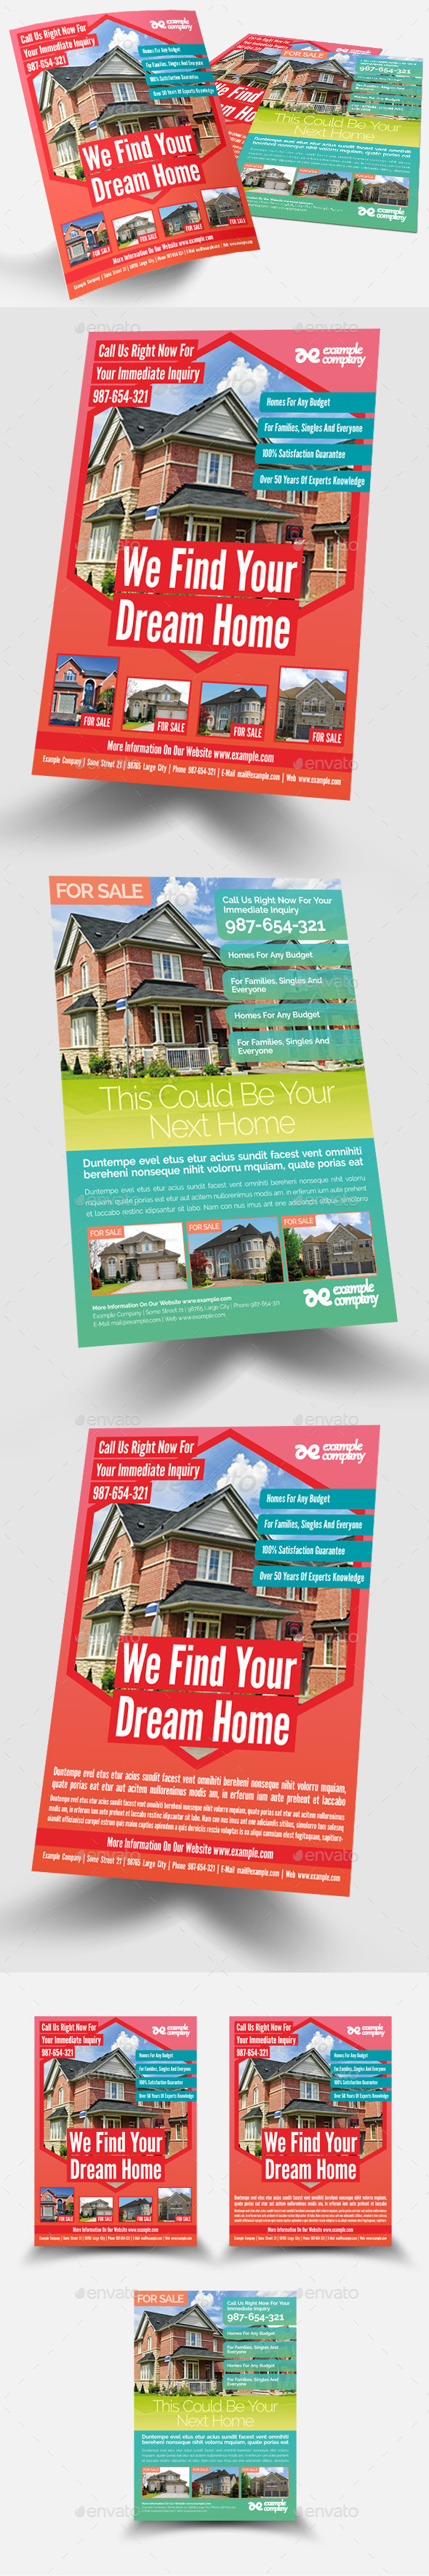 GraphicRiver Real Estate Flyer 10399065